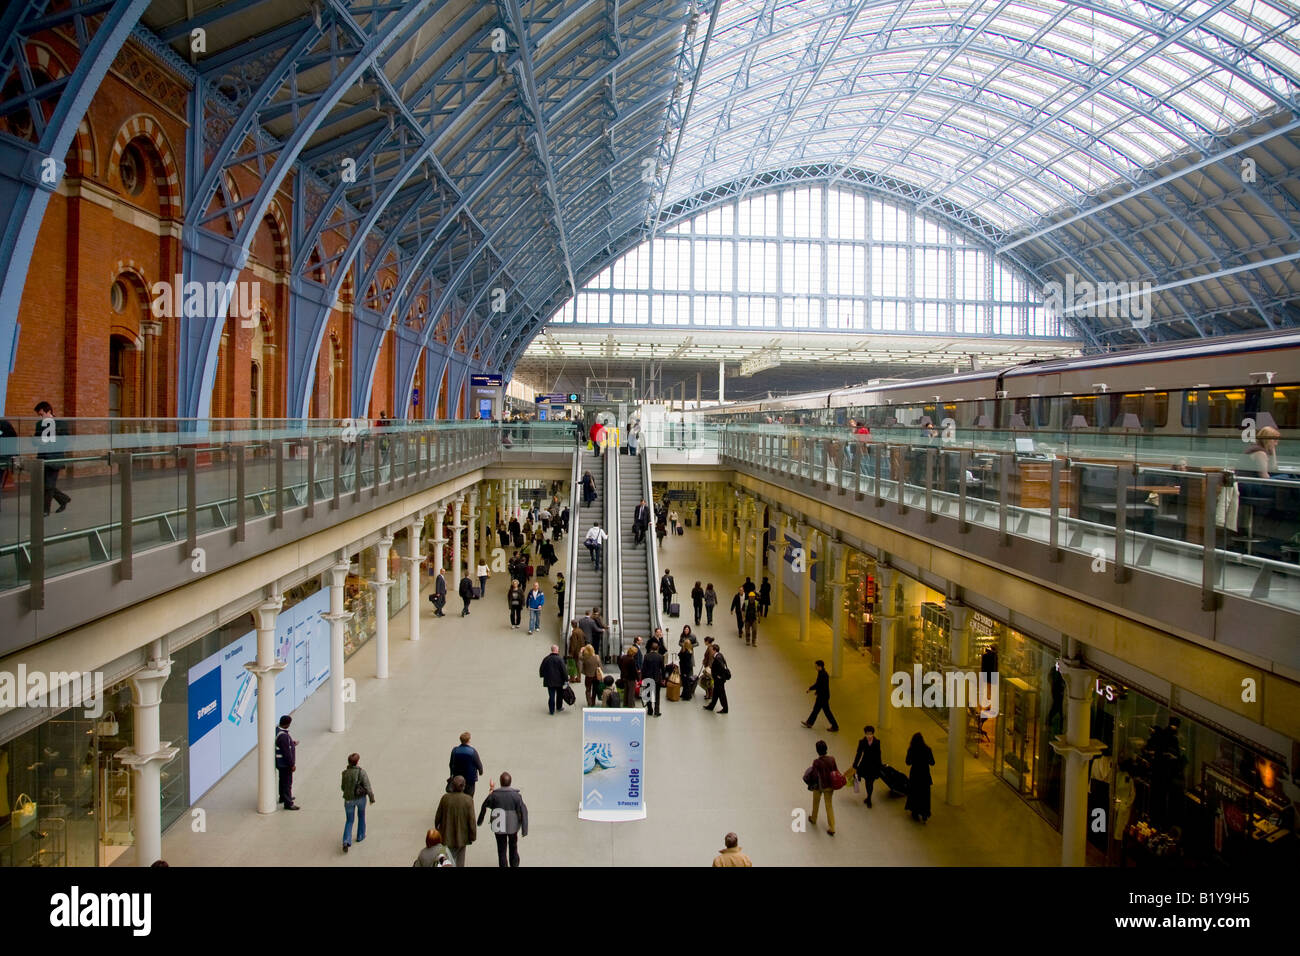 Interior of the rebuilt St Pancras Railway Station London England - Stock Image